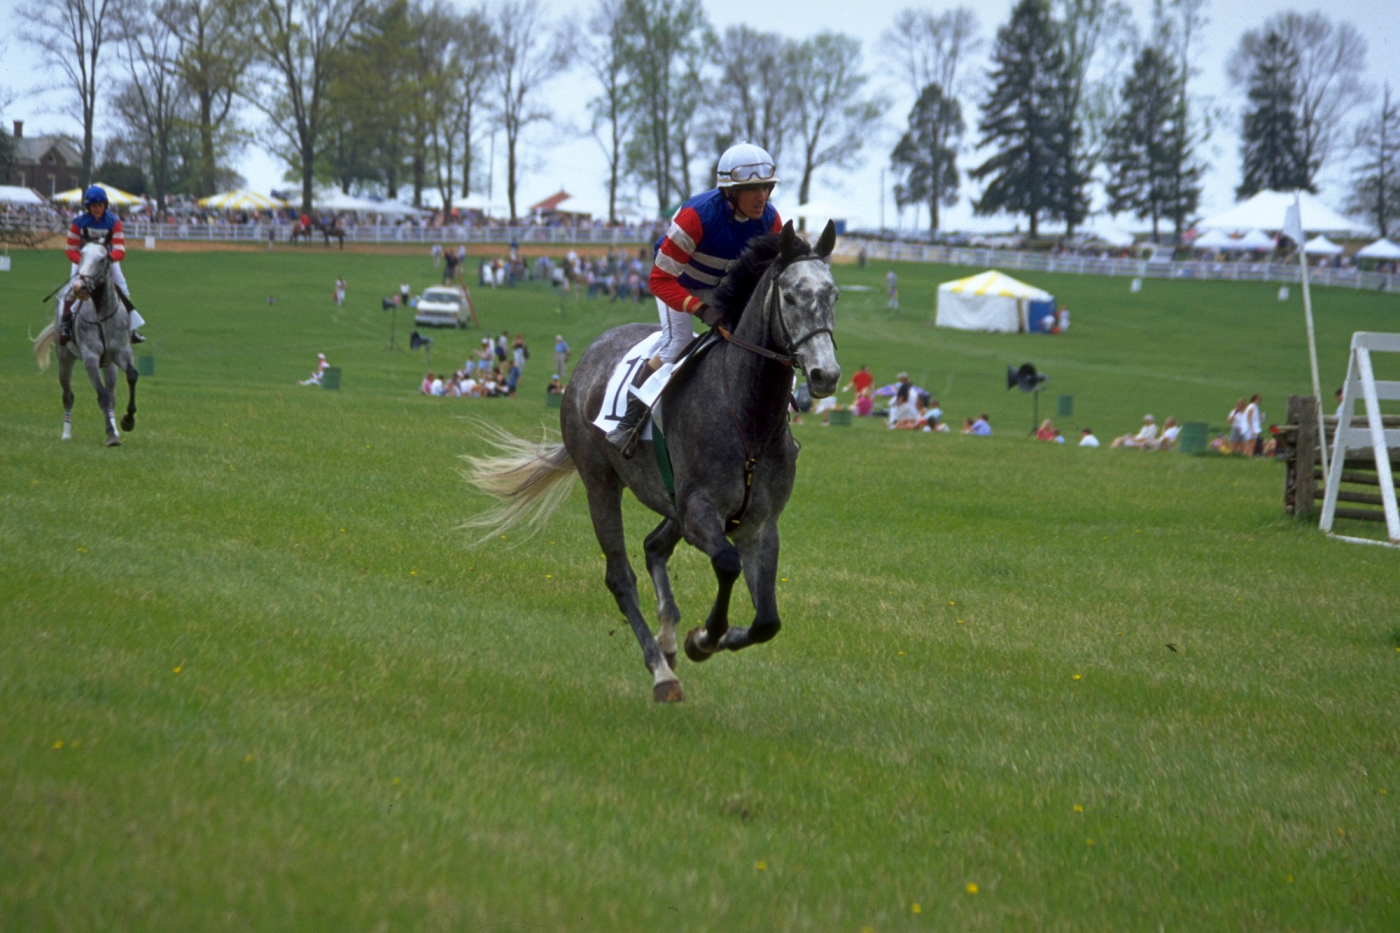 Steeplechase racing at The Plains' Great Meadow in  Loudoun County. Photo: Loudoun Dept. of Economic Development